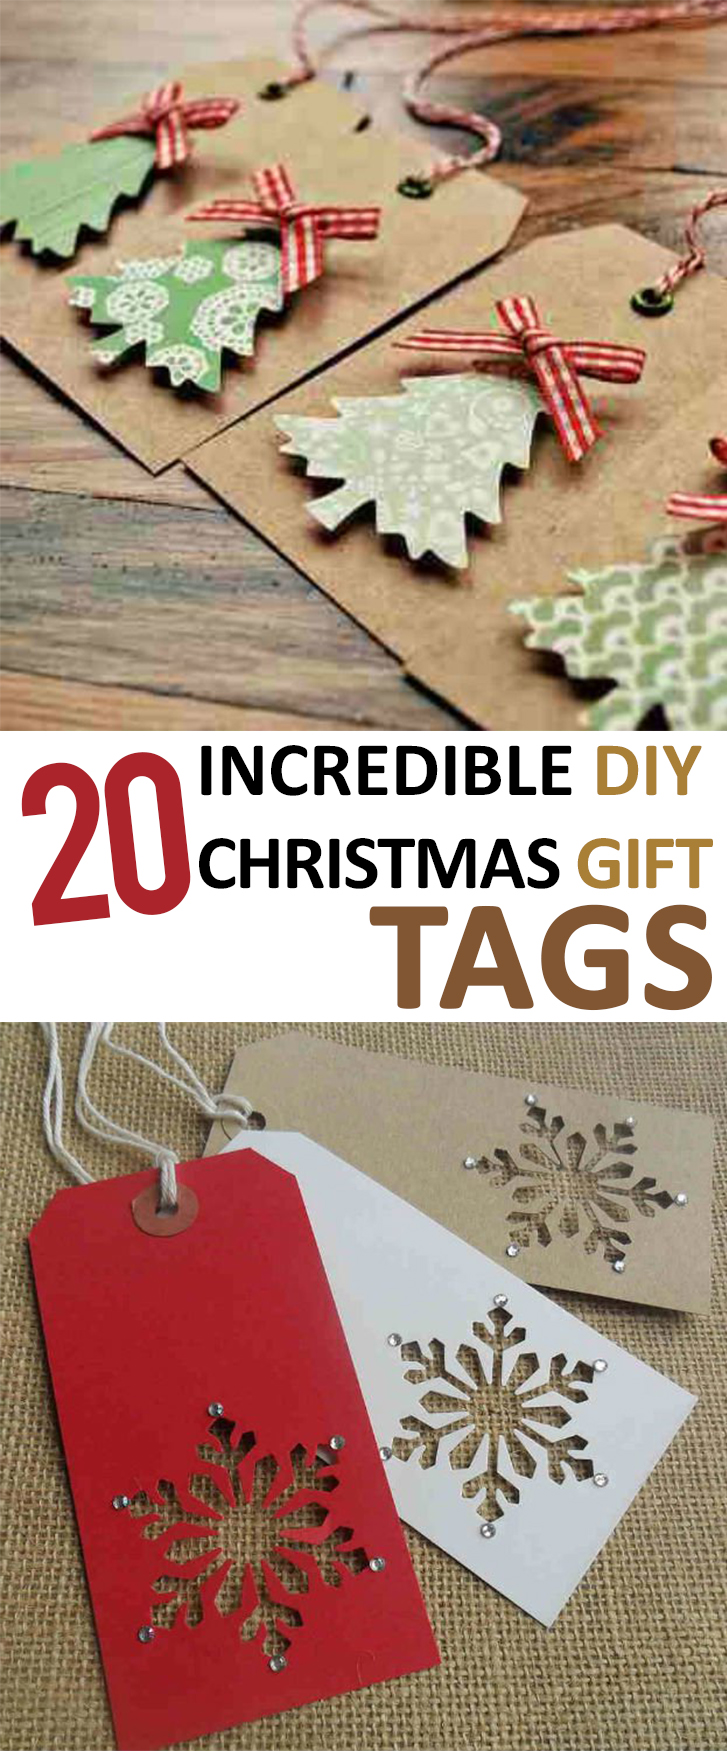 20 Incredible DIY Christmas Gift Tags -